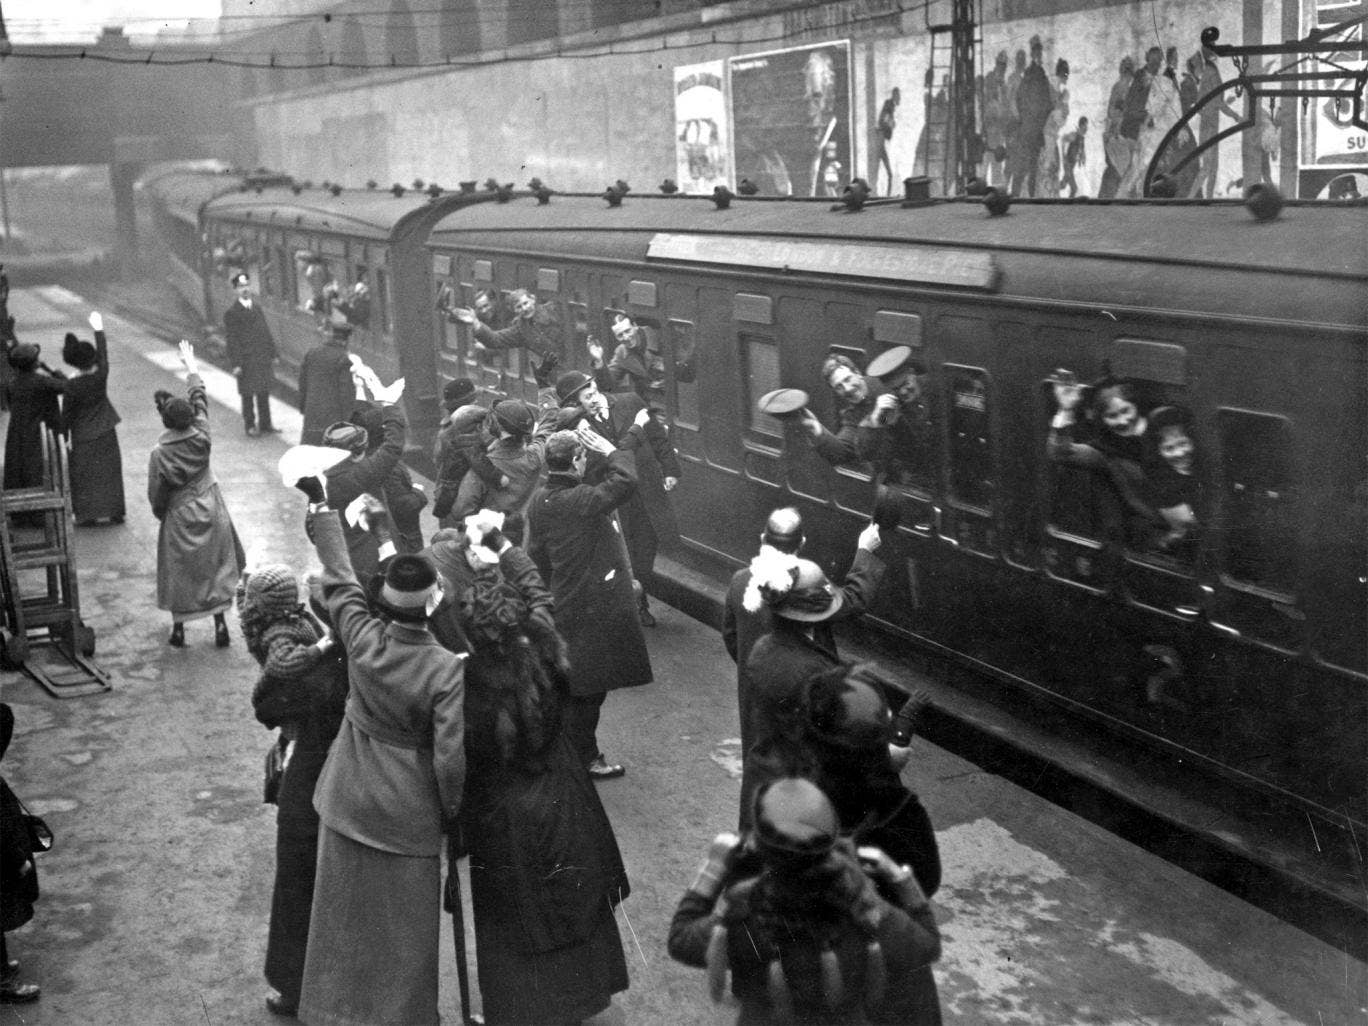 Soldiers waving good bye to loved ones as they leave Victoria Station in 1915